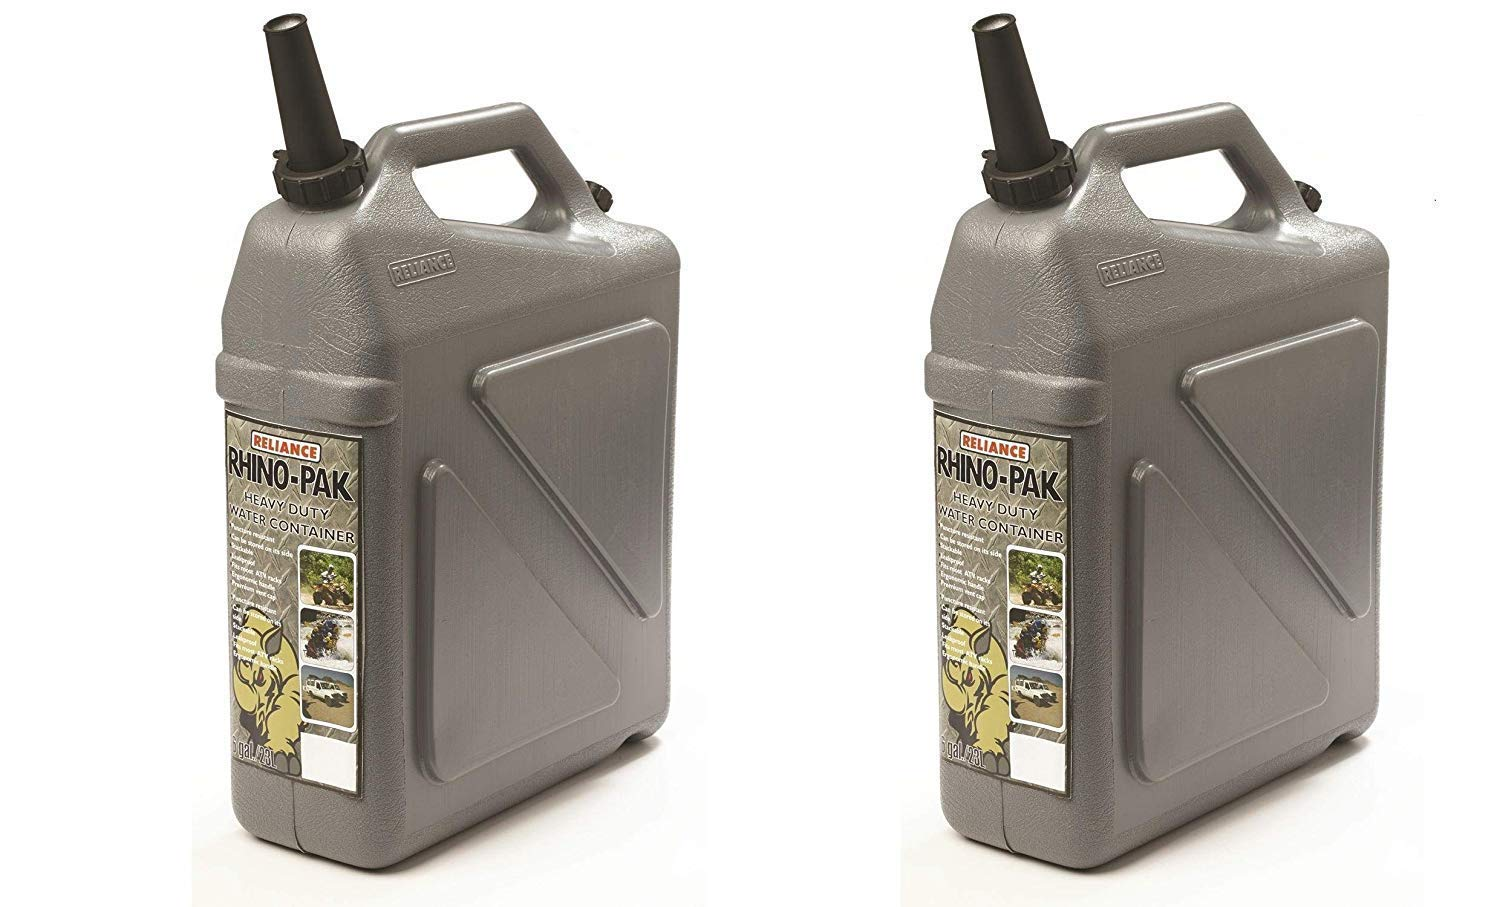 Reliance Rhino-Pak Heavy Duty Water Container (Grey, Medium) (Pack of 2) by Reliance Products